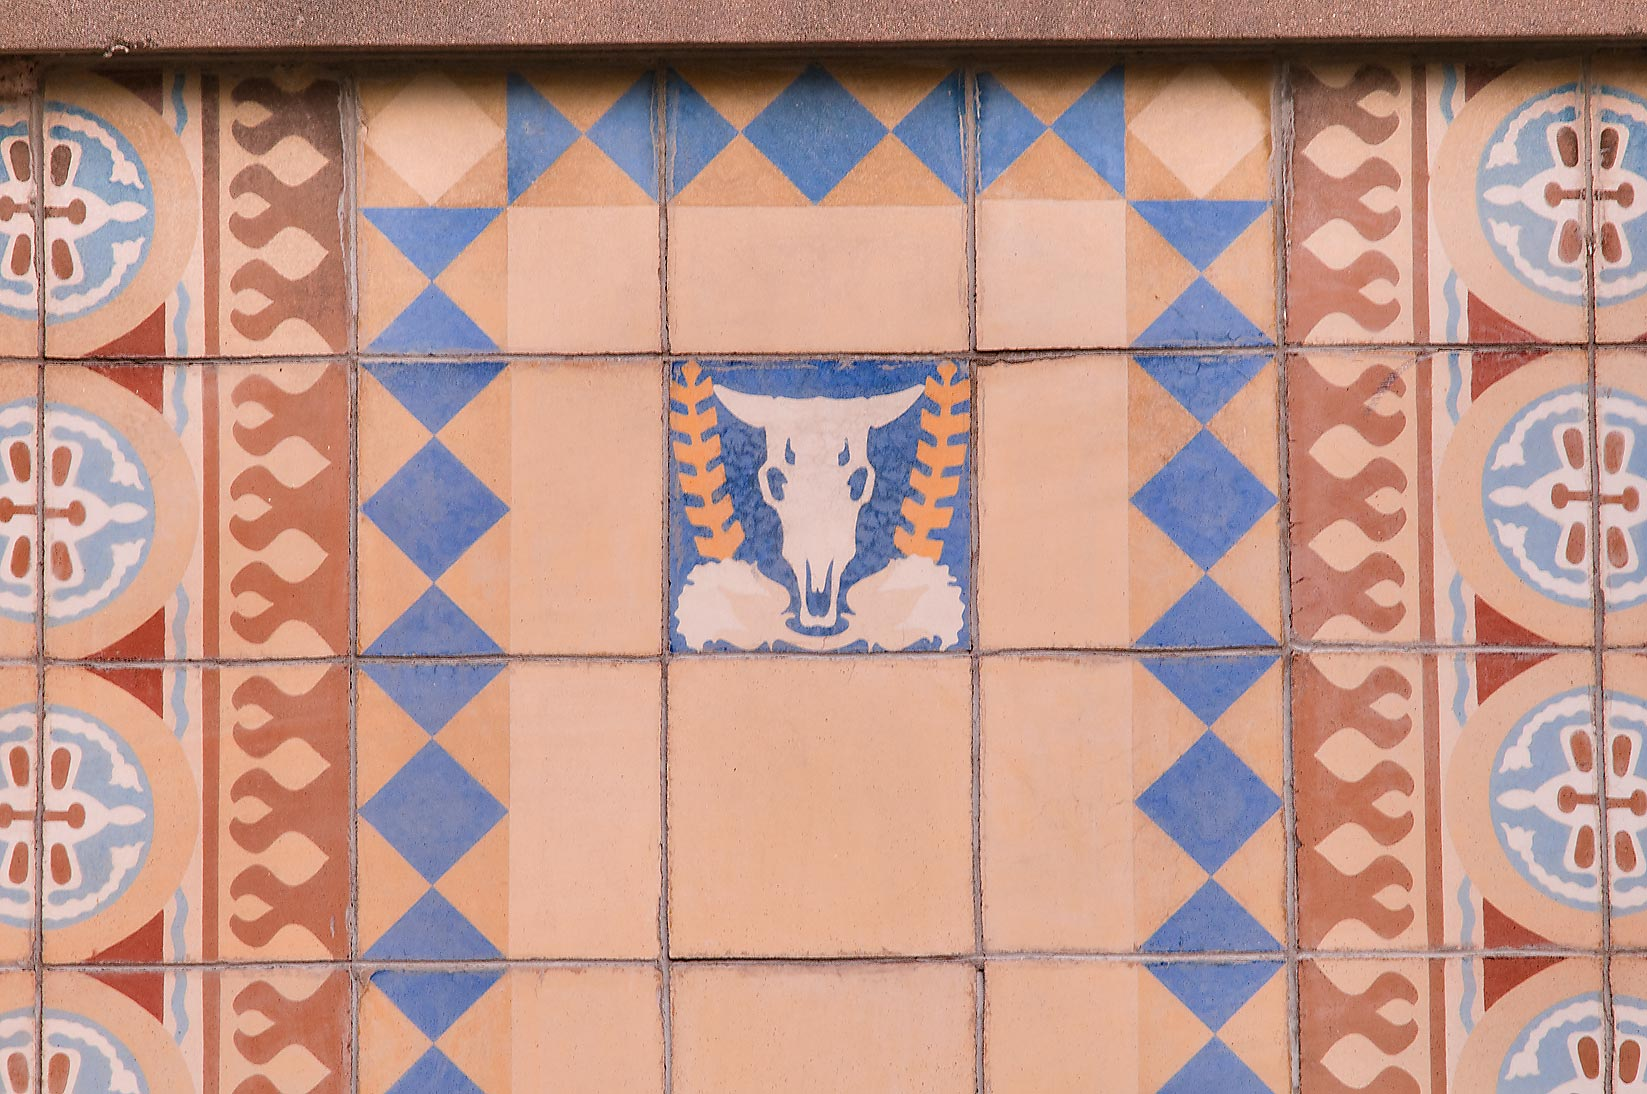 Cow skulls among ceramic tile ornamentation on...M University. College Station, Texas